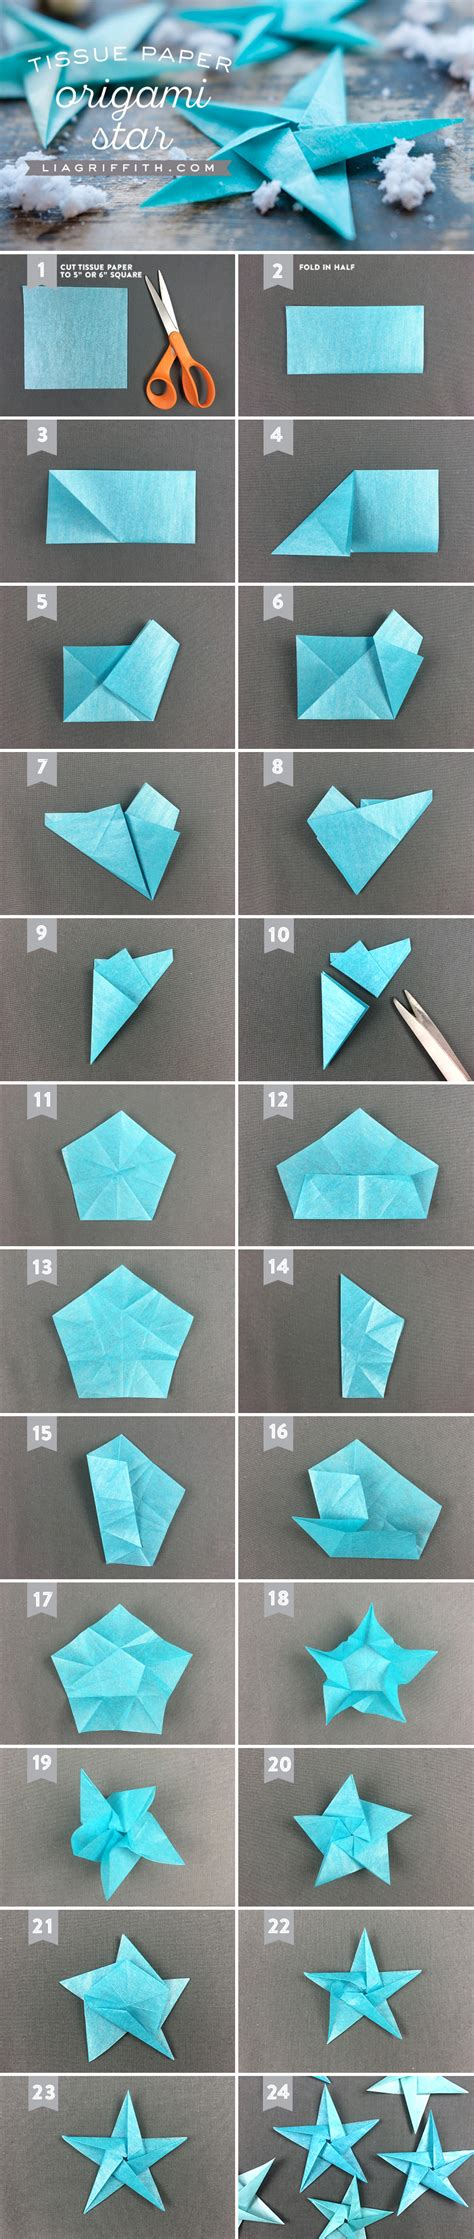 easy origami step by step christmas decorations tissue origami ornaments lia griffith